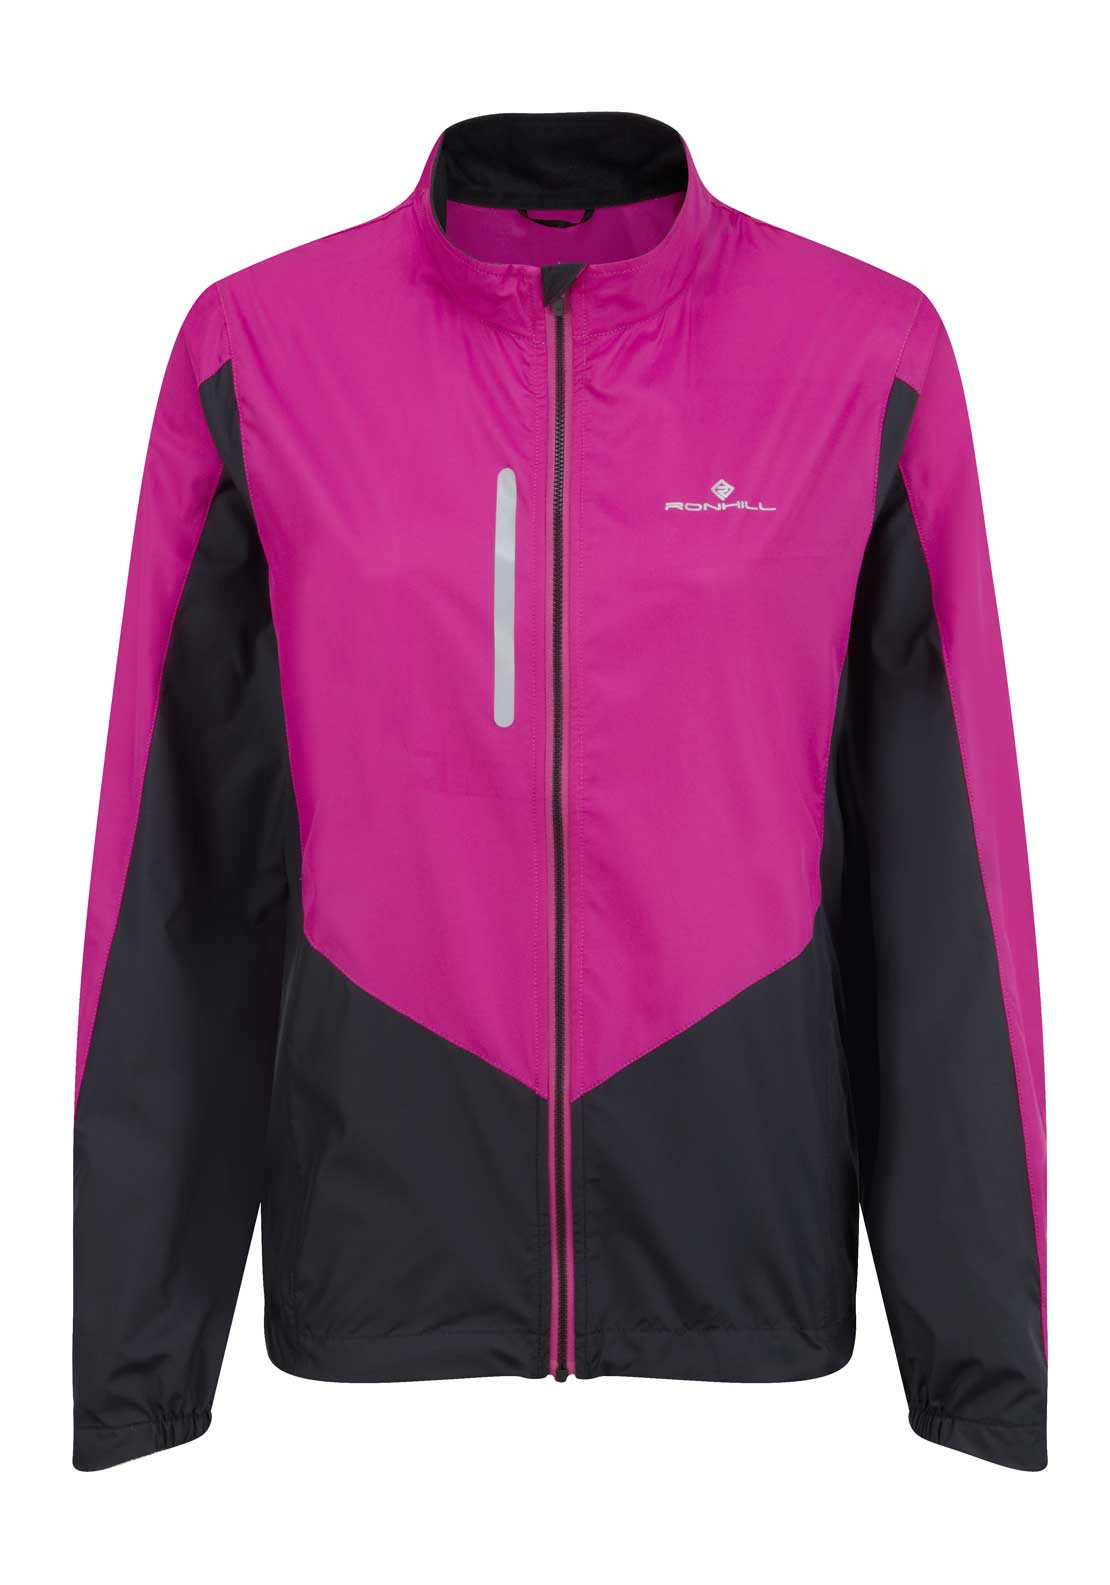 Ronhill Womens Aspiration Windlite Jacket, Magenta and Black